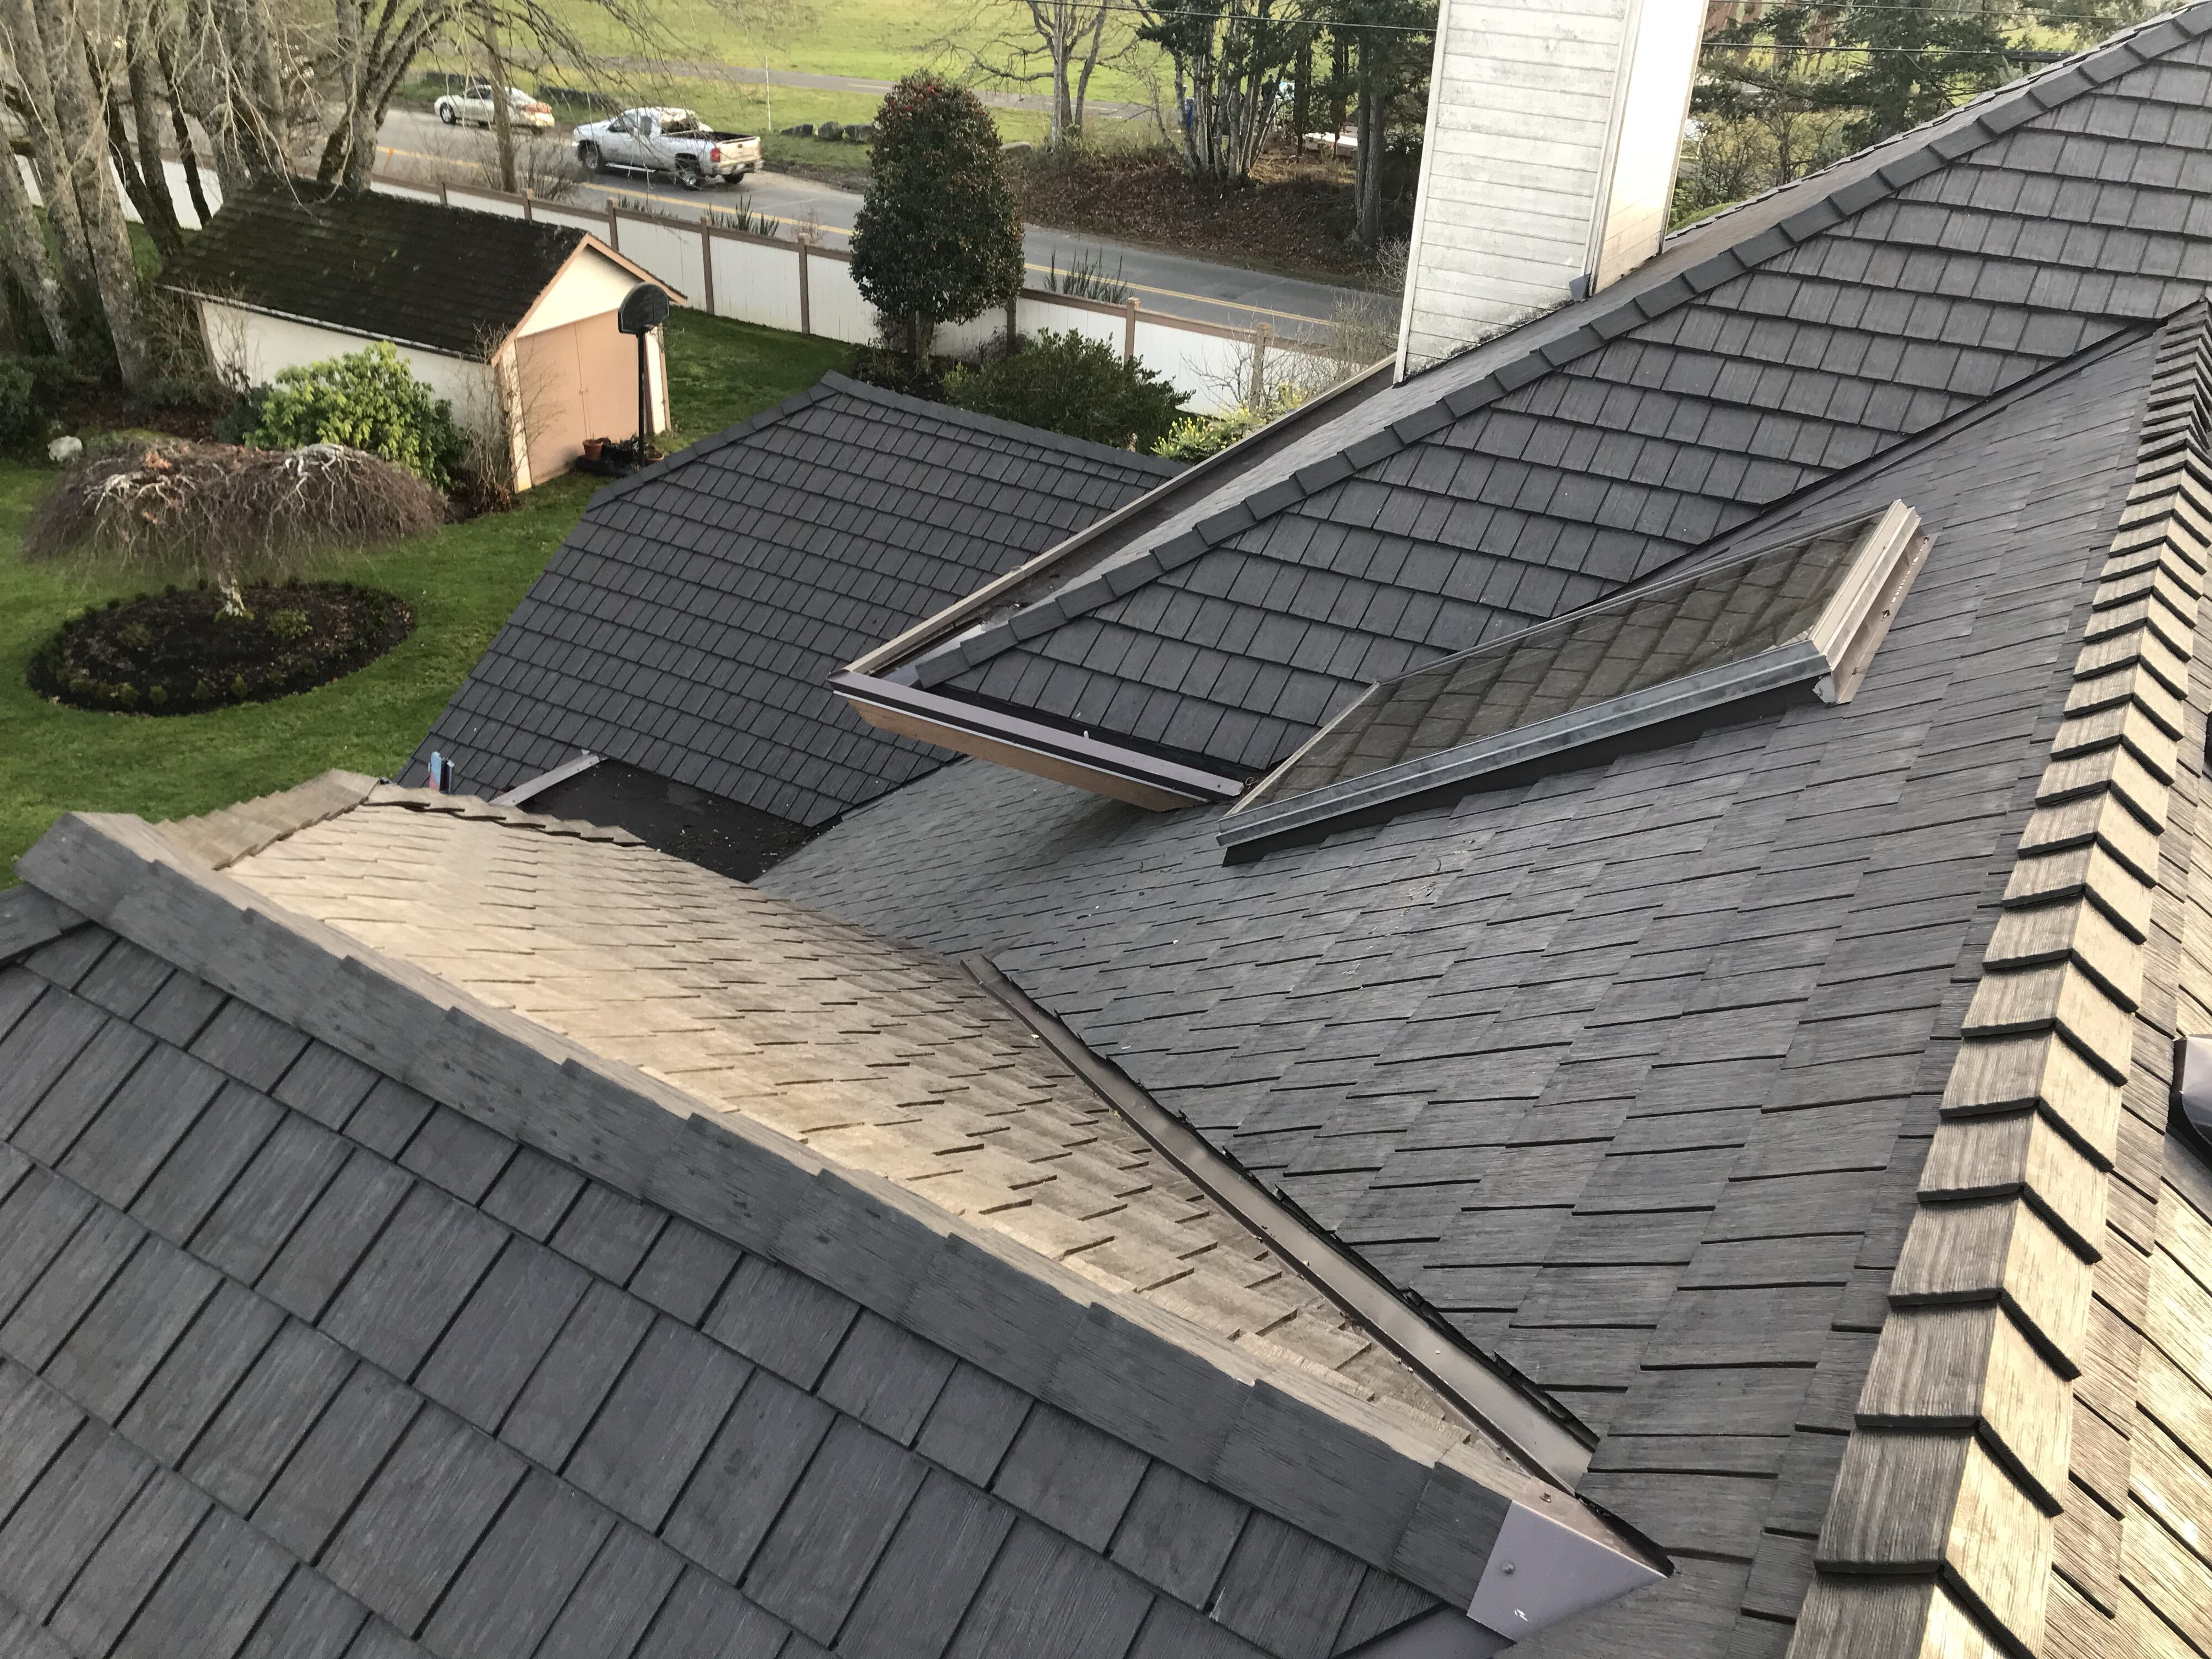 Environmentally Friendly Rubber Roofing System Made From 95 Recycled Materials Roofing Ecofriendly Custom Rubber Roofing Roofing Systems Outdoor Decor